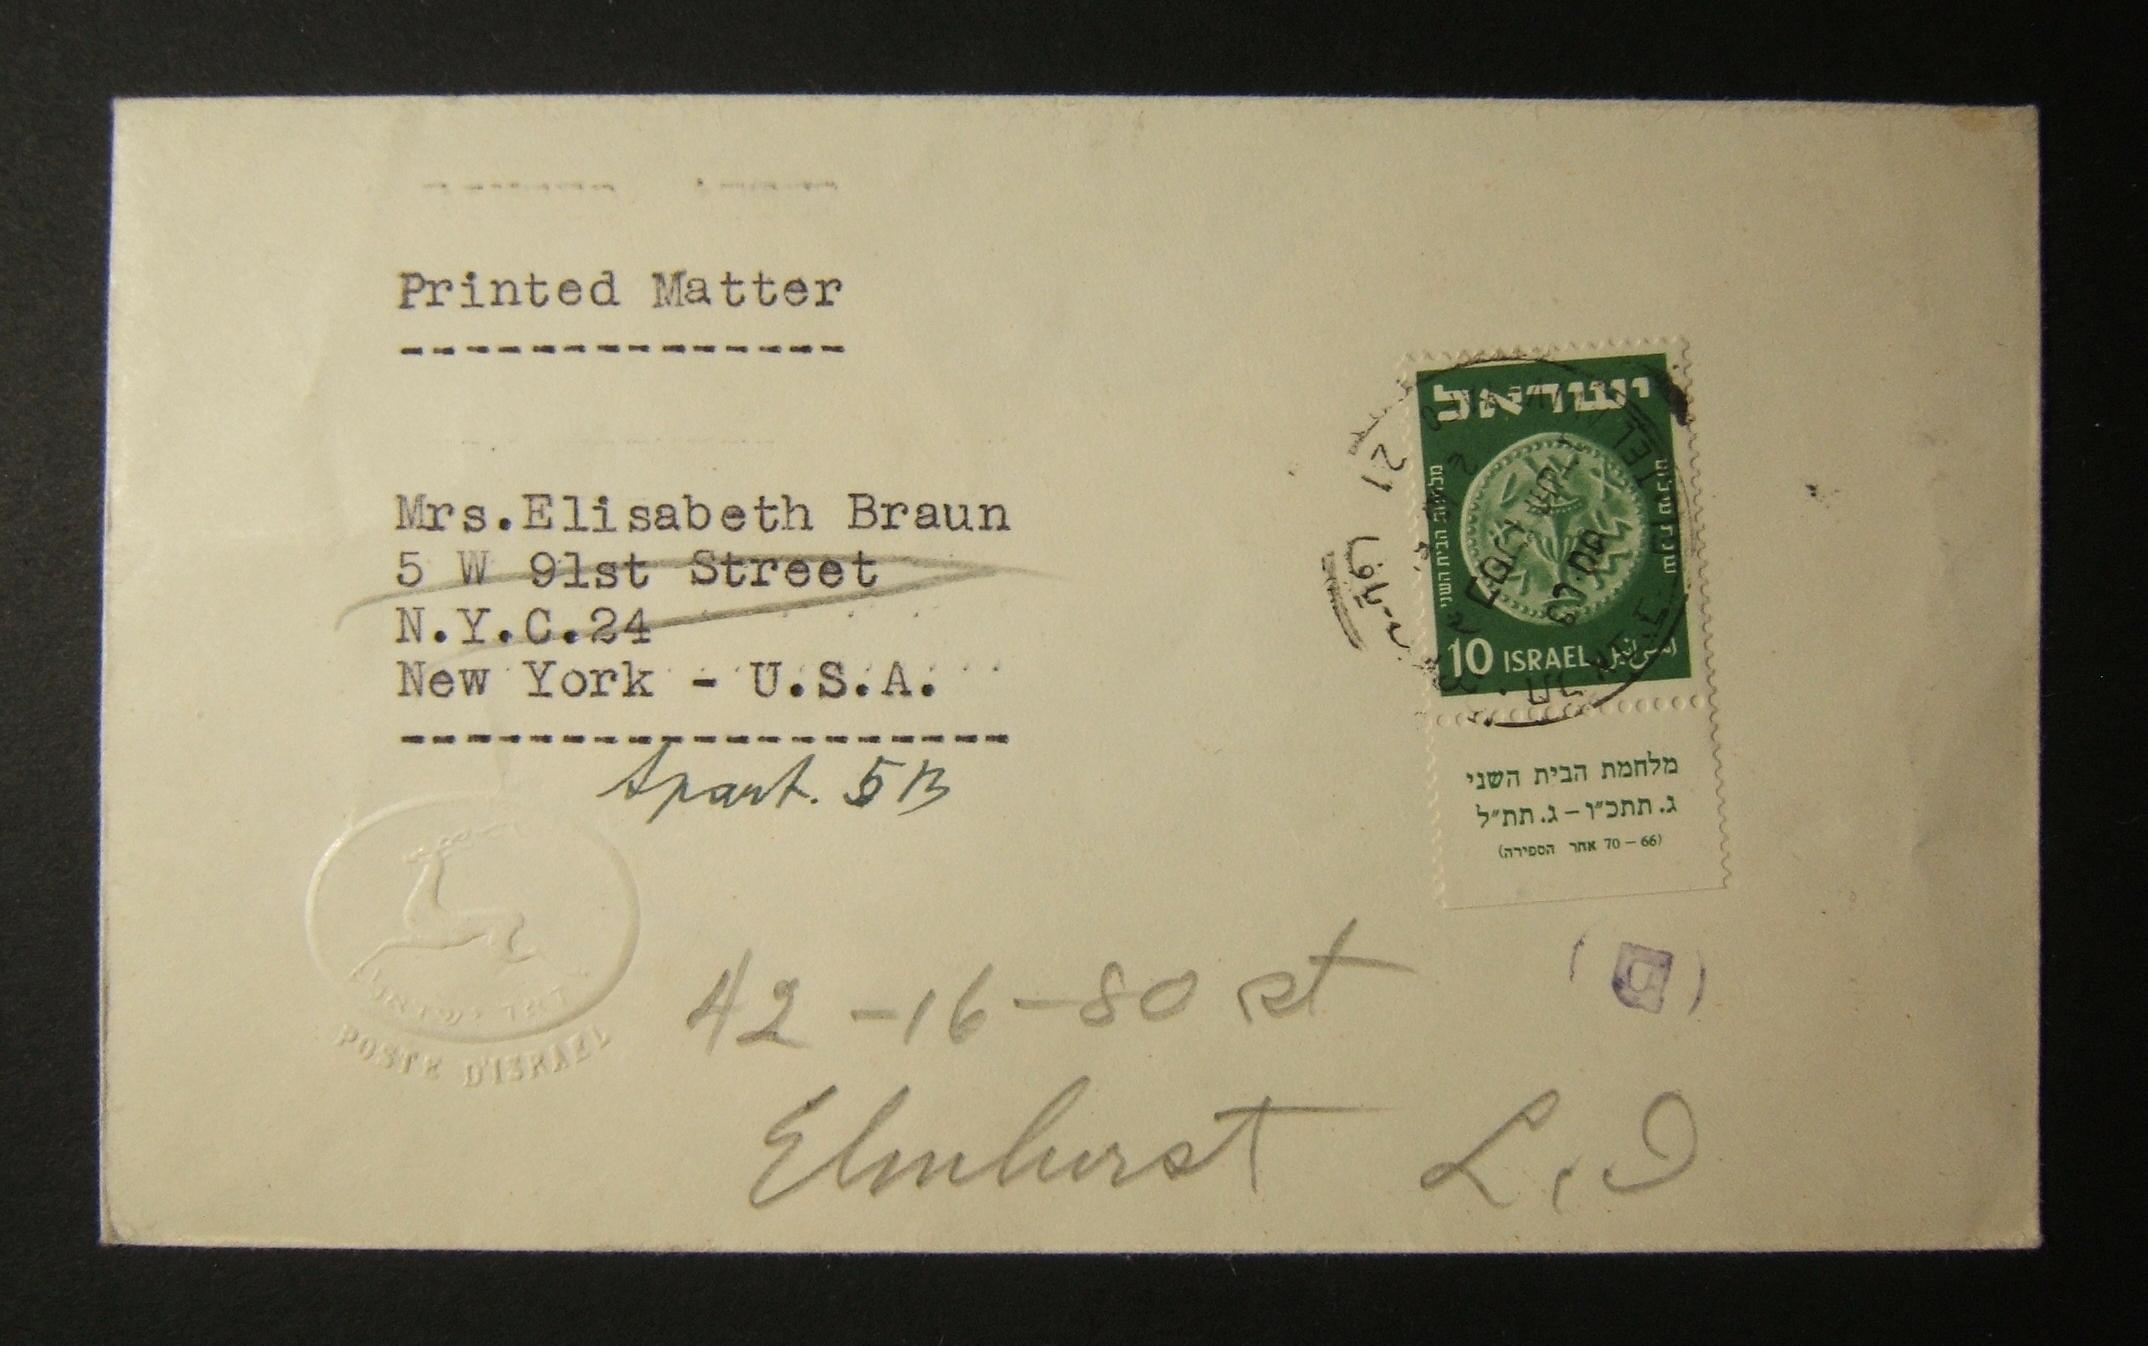 1951 printed matter cover to US: 2-10-51 Israel Post stationary printed matter surface mailed cover ex TLV to NYC franked 10pr at the SU-2 pm rate using tabbed 1950 3rd Coinage Ba4